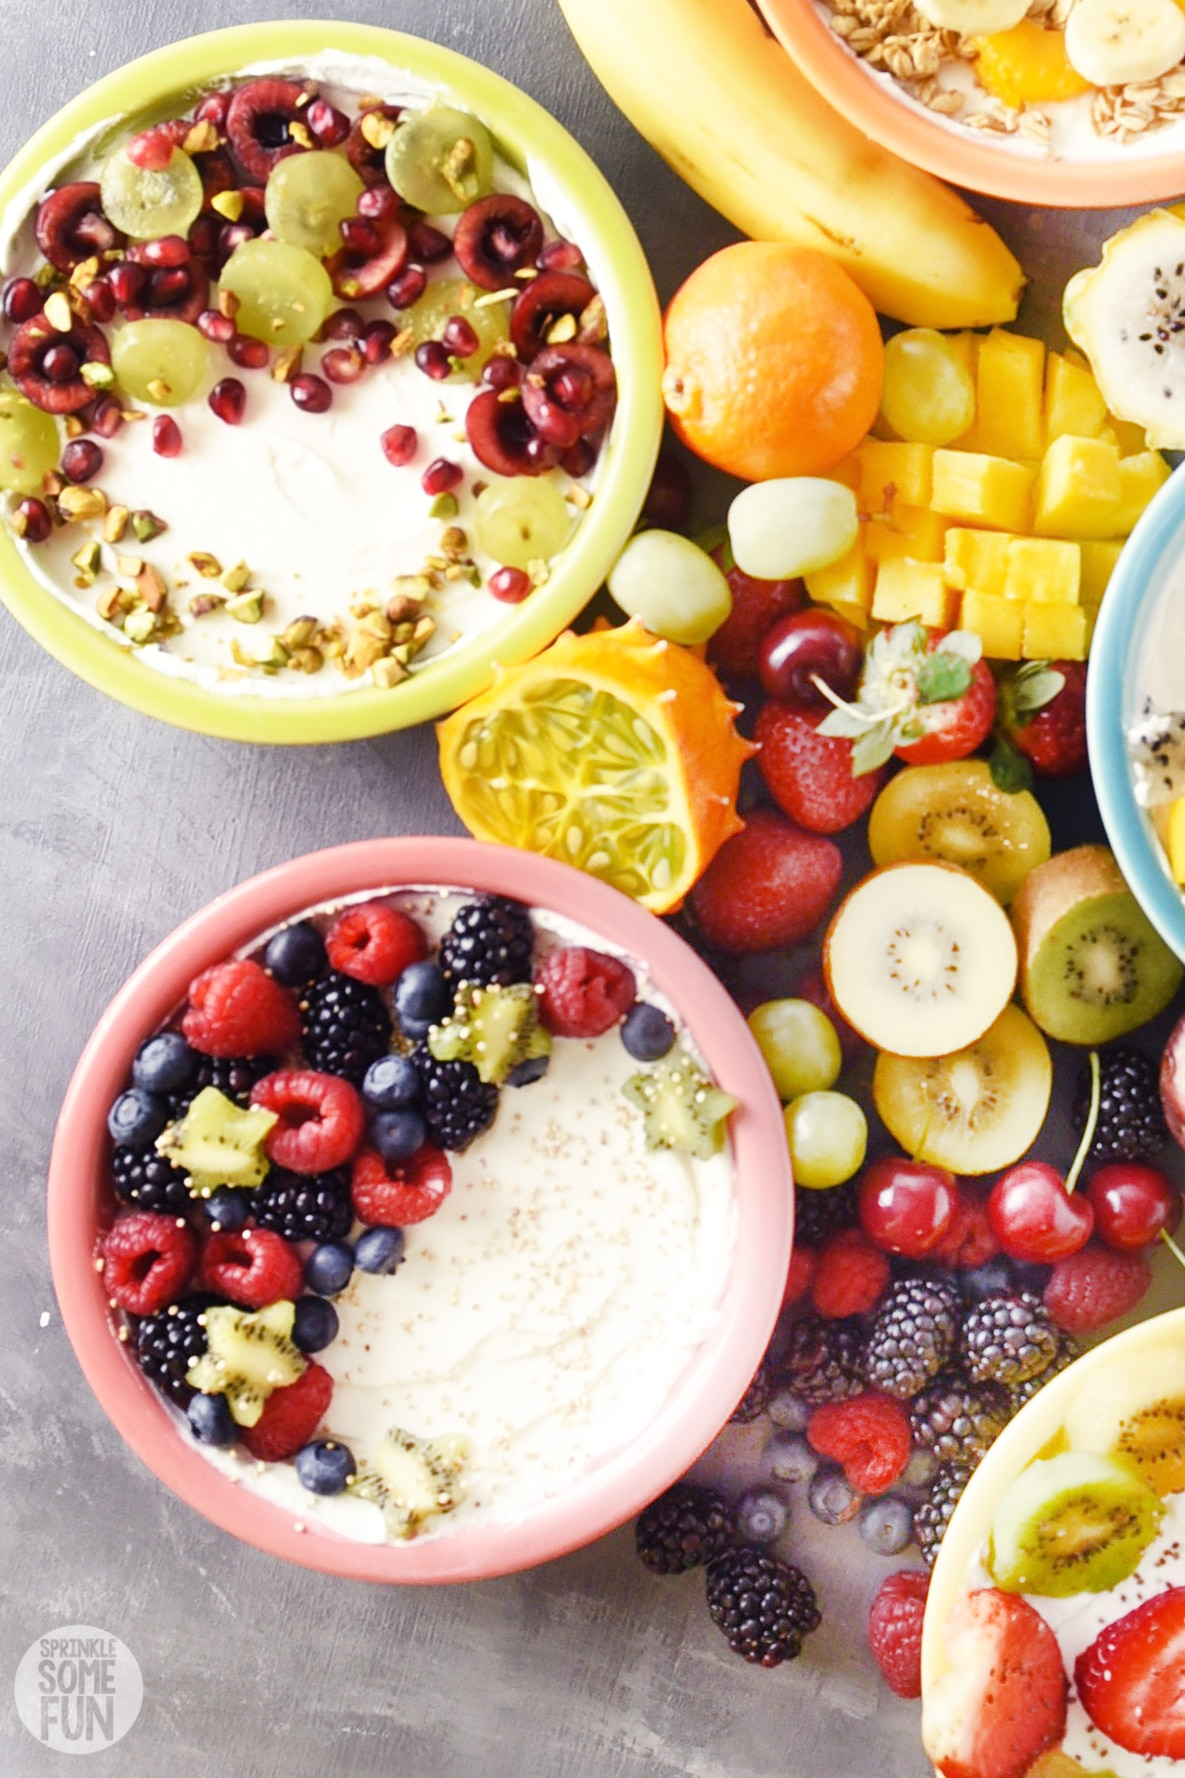 greek yogurt bowls with fruit and toppings